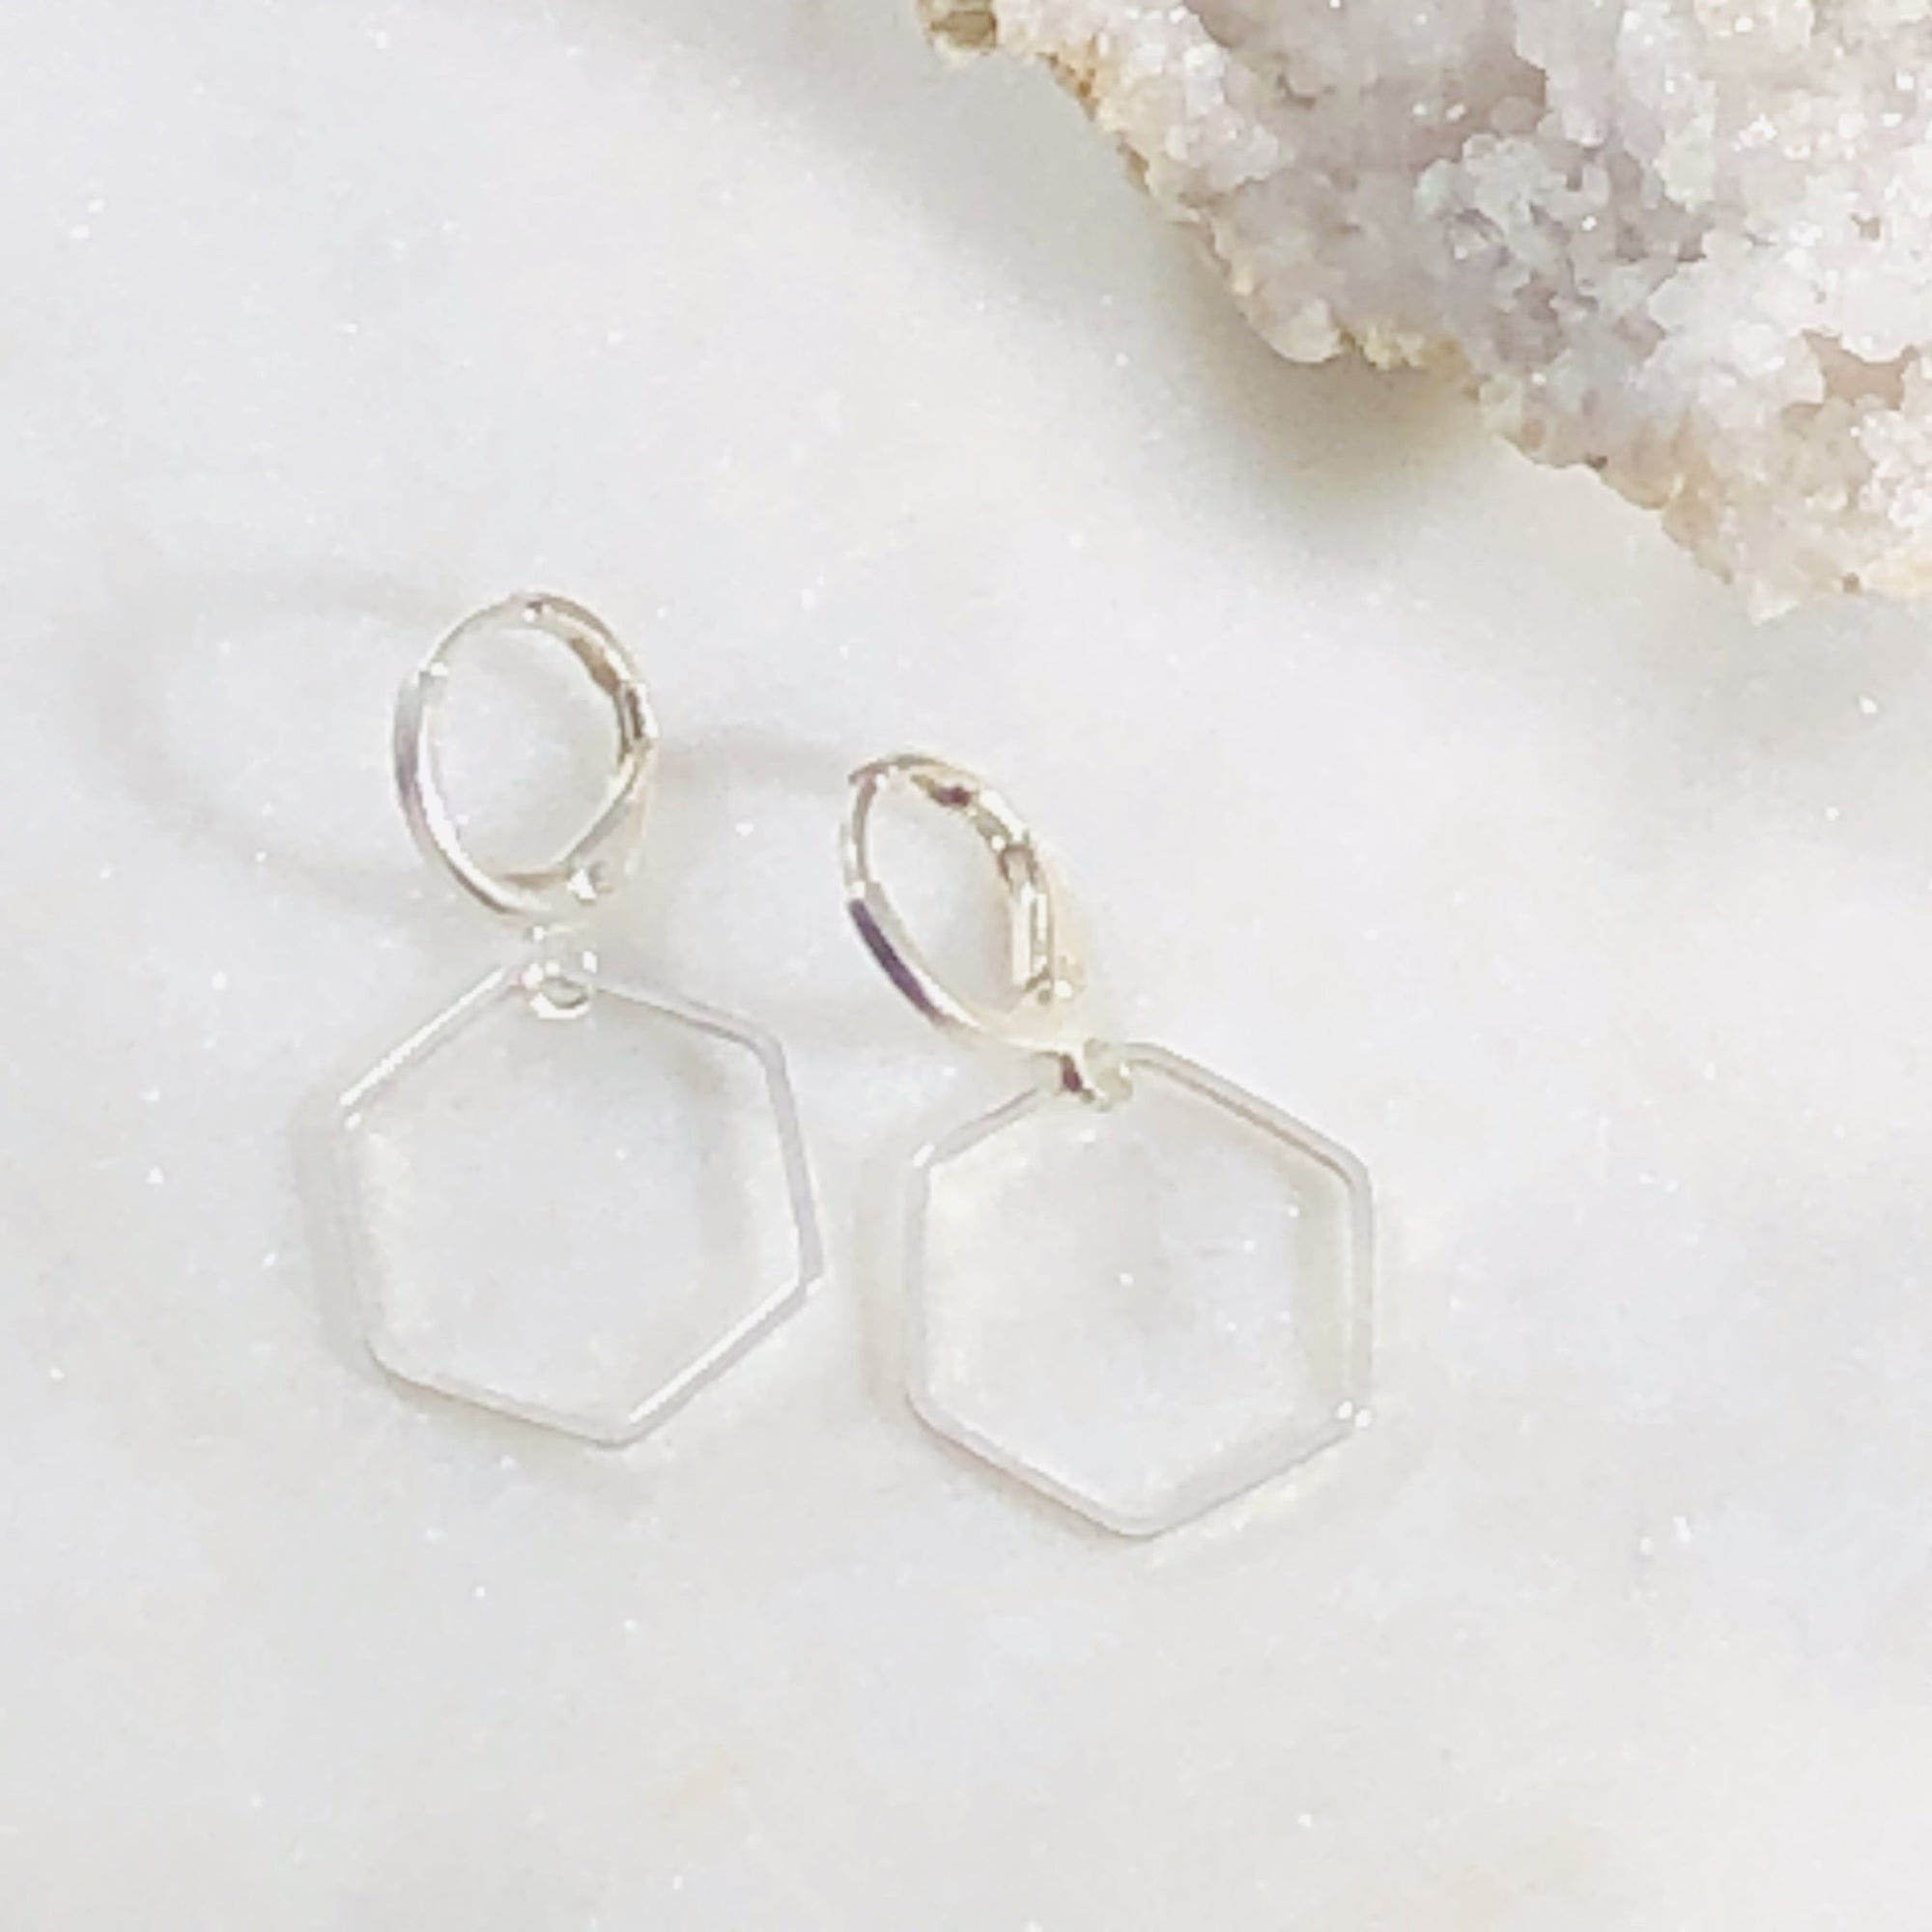 Handmade silver plated hexagon earrings with deeper meaning of sacred symbols